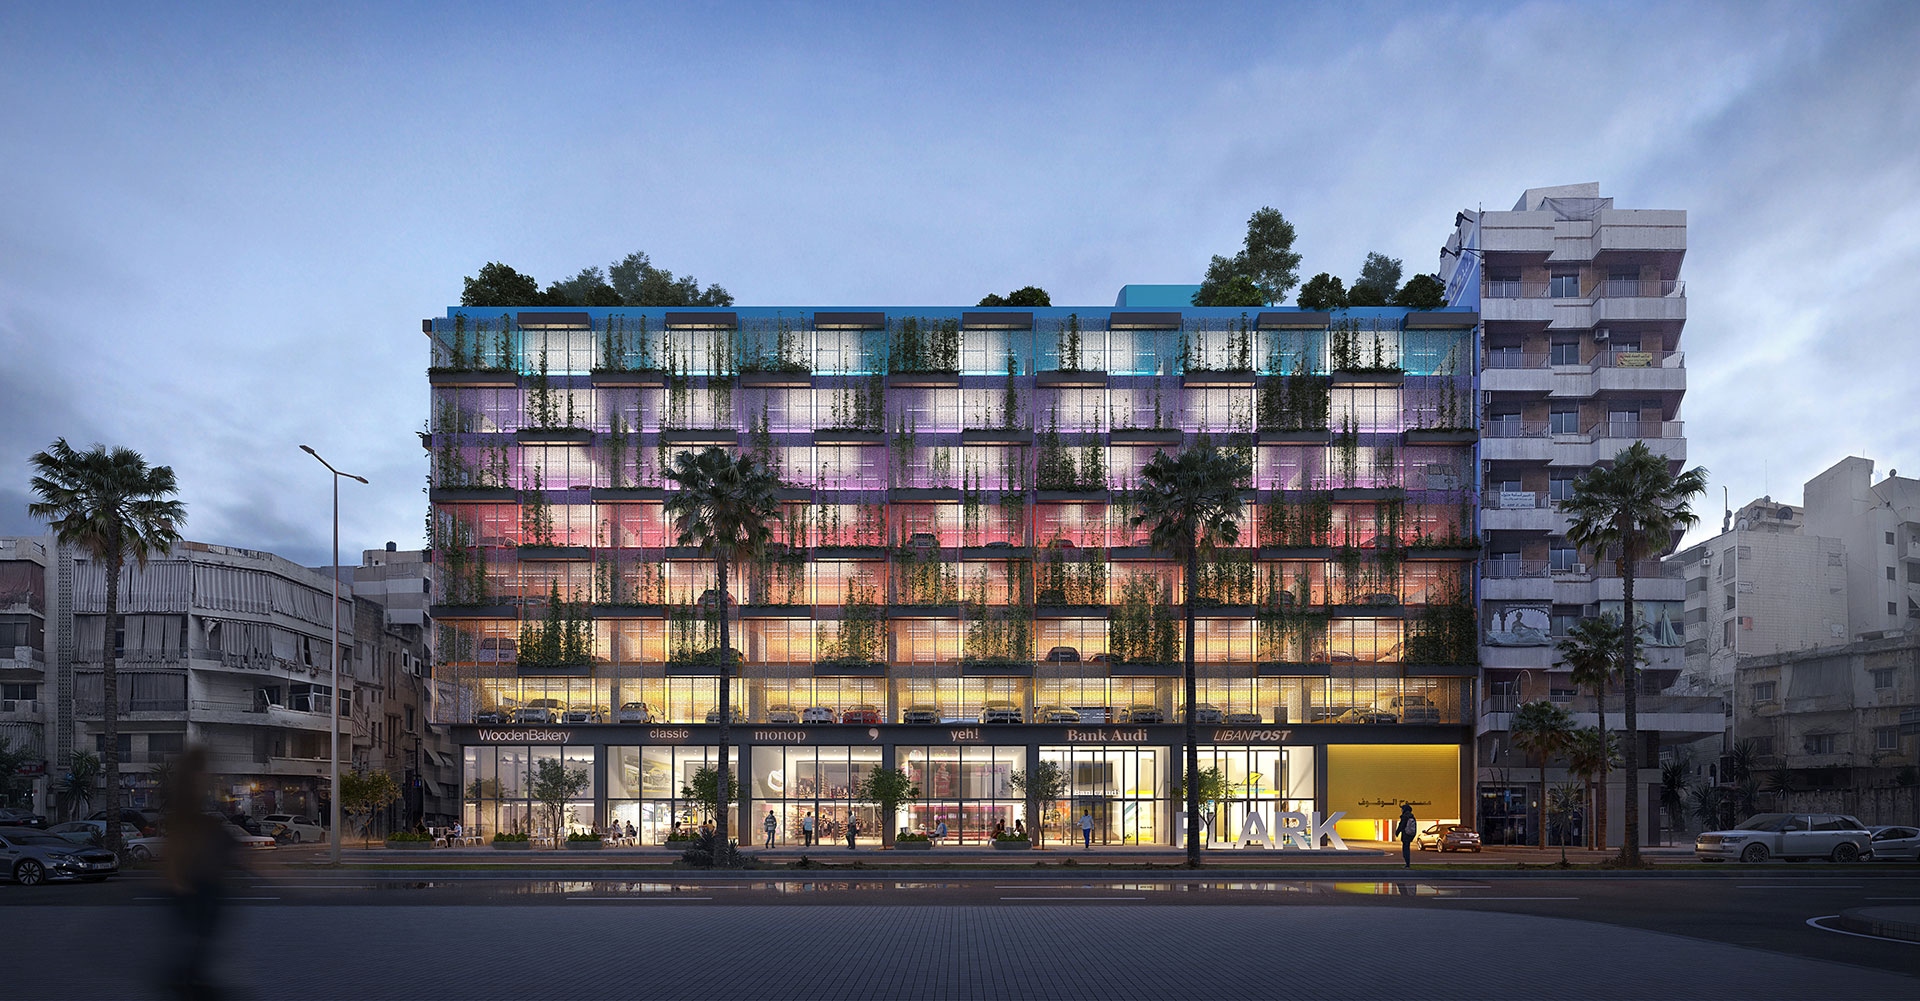 Parking Structure / Beirut / Laceco